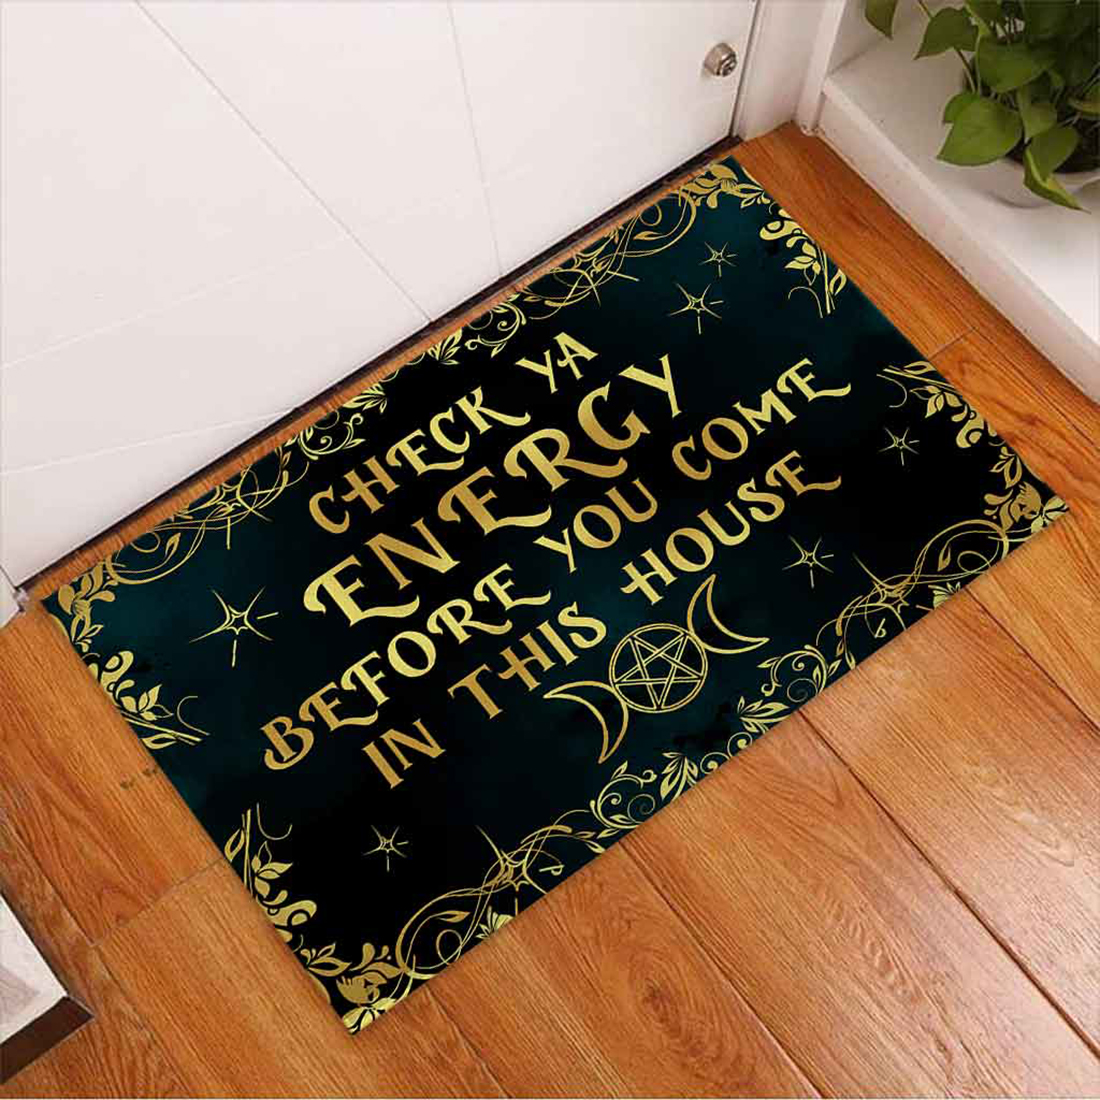 Witch check ya energy before you come in this house doormat